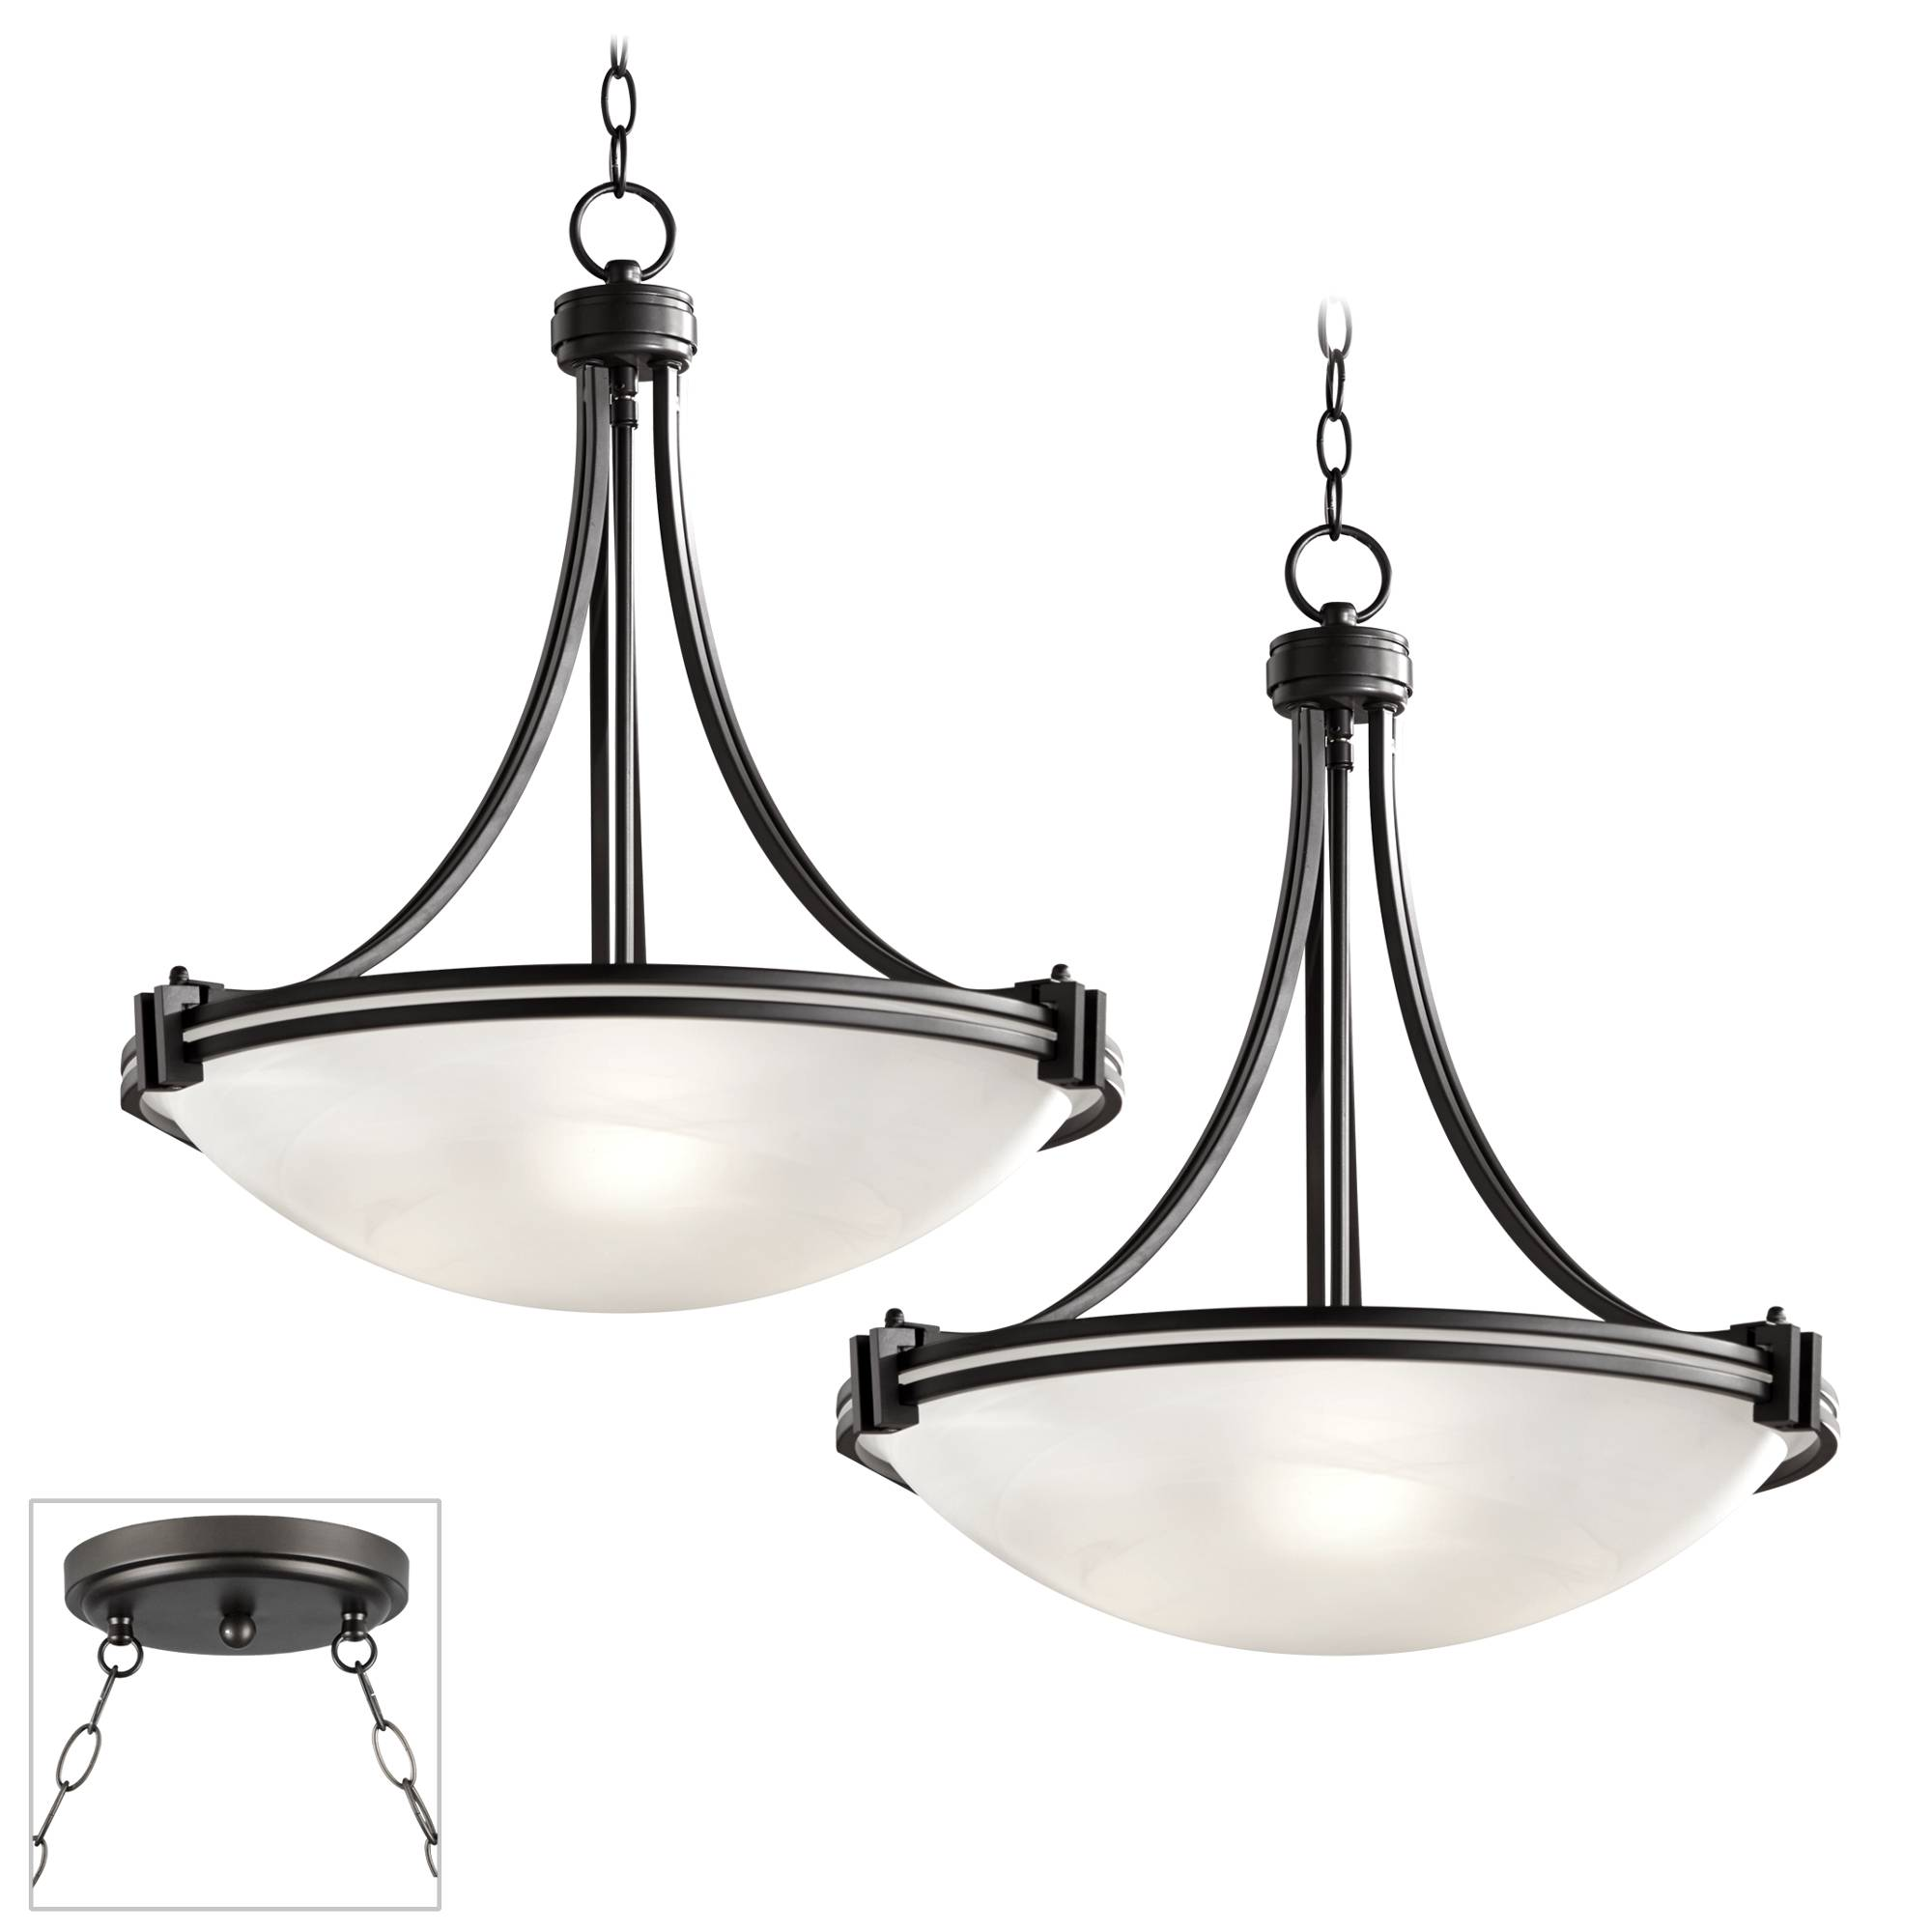 Details About Possini Euro Design Deco Bronze Double Multi Light Pendant